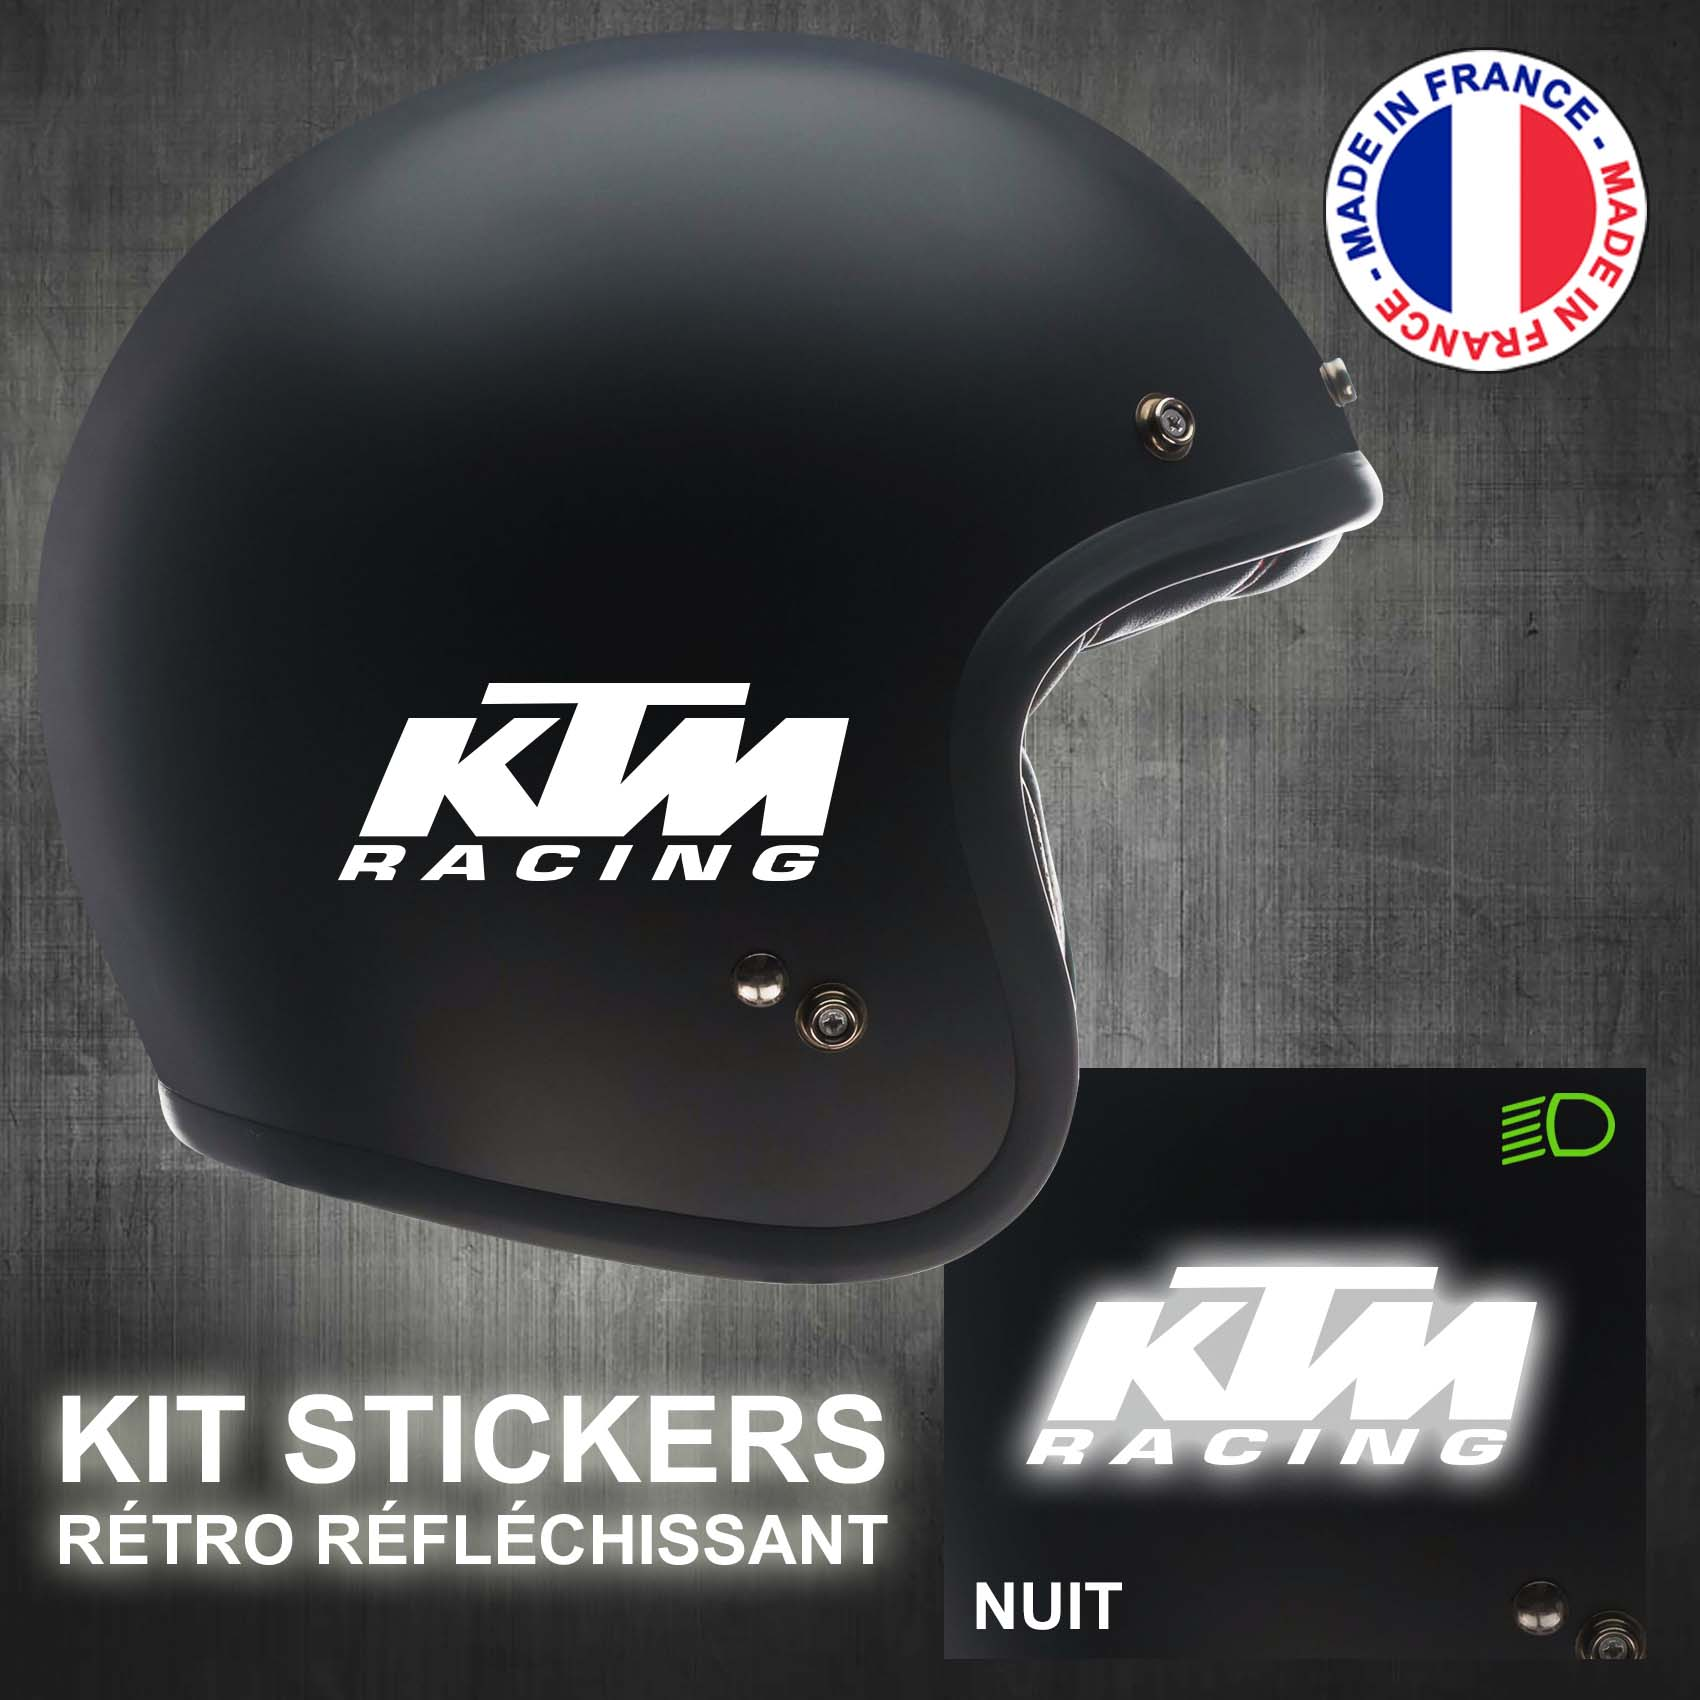 stickers-casque-moto-ktm-racing-ref2-retro-reflechissant-autocollant-noir-moto-velo-tuning-racing-route-sticker-casques-adhesif-scooter-nuit-securite-decals-personnalise-personnalisable-min